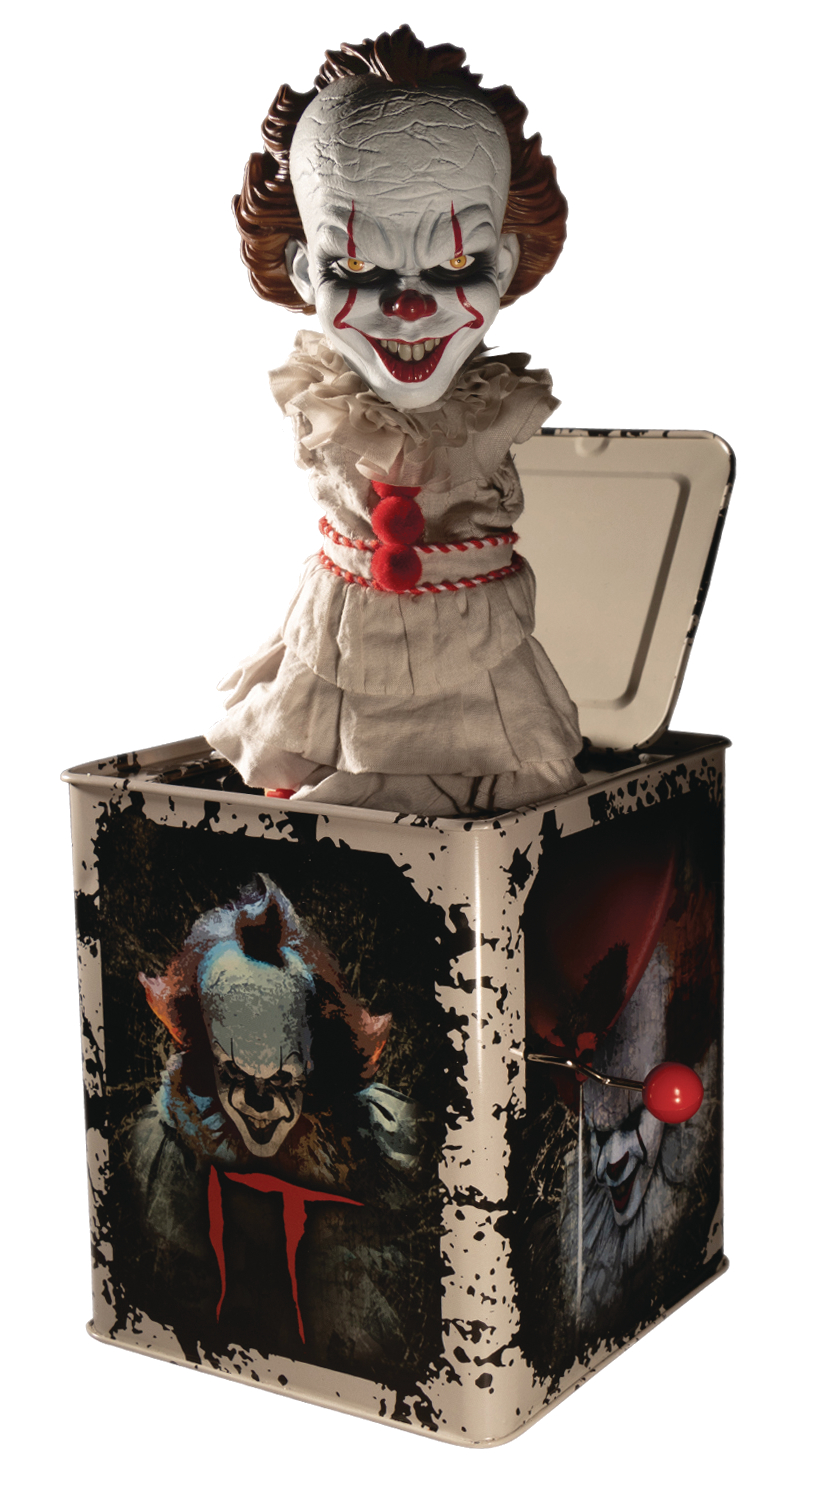 IT 2017 PENNYWISE BURST A BOX